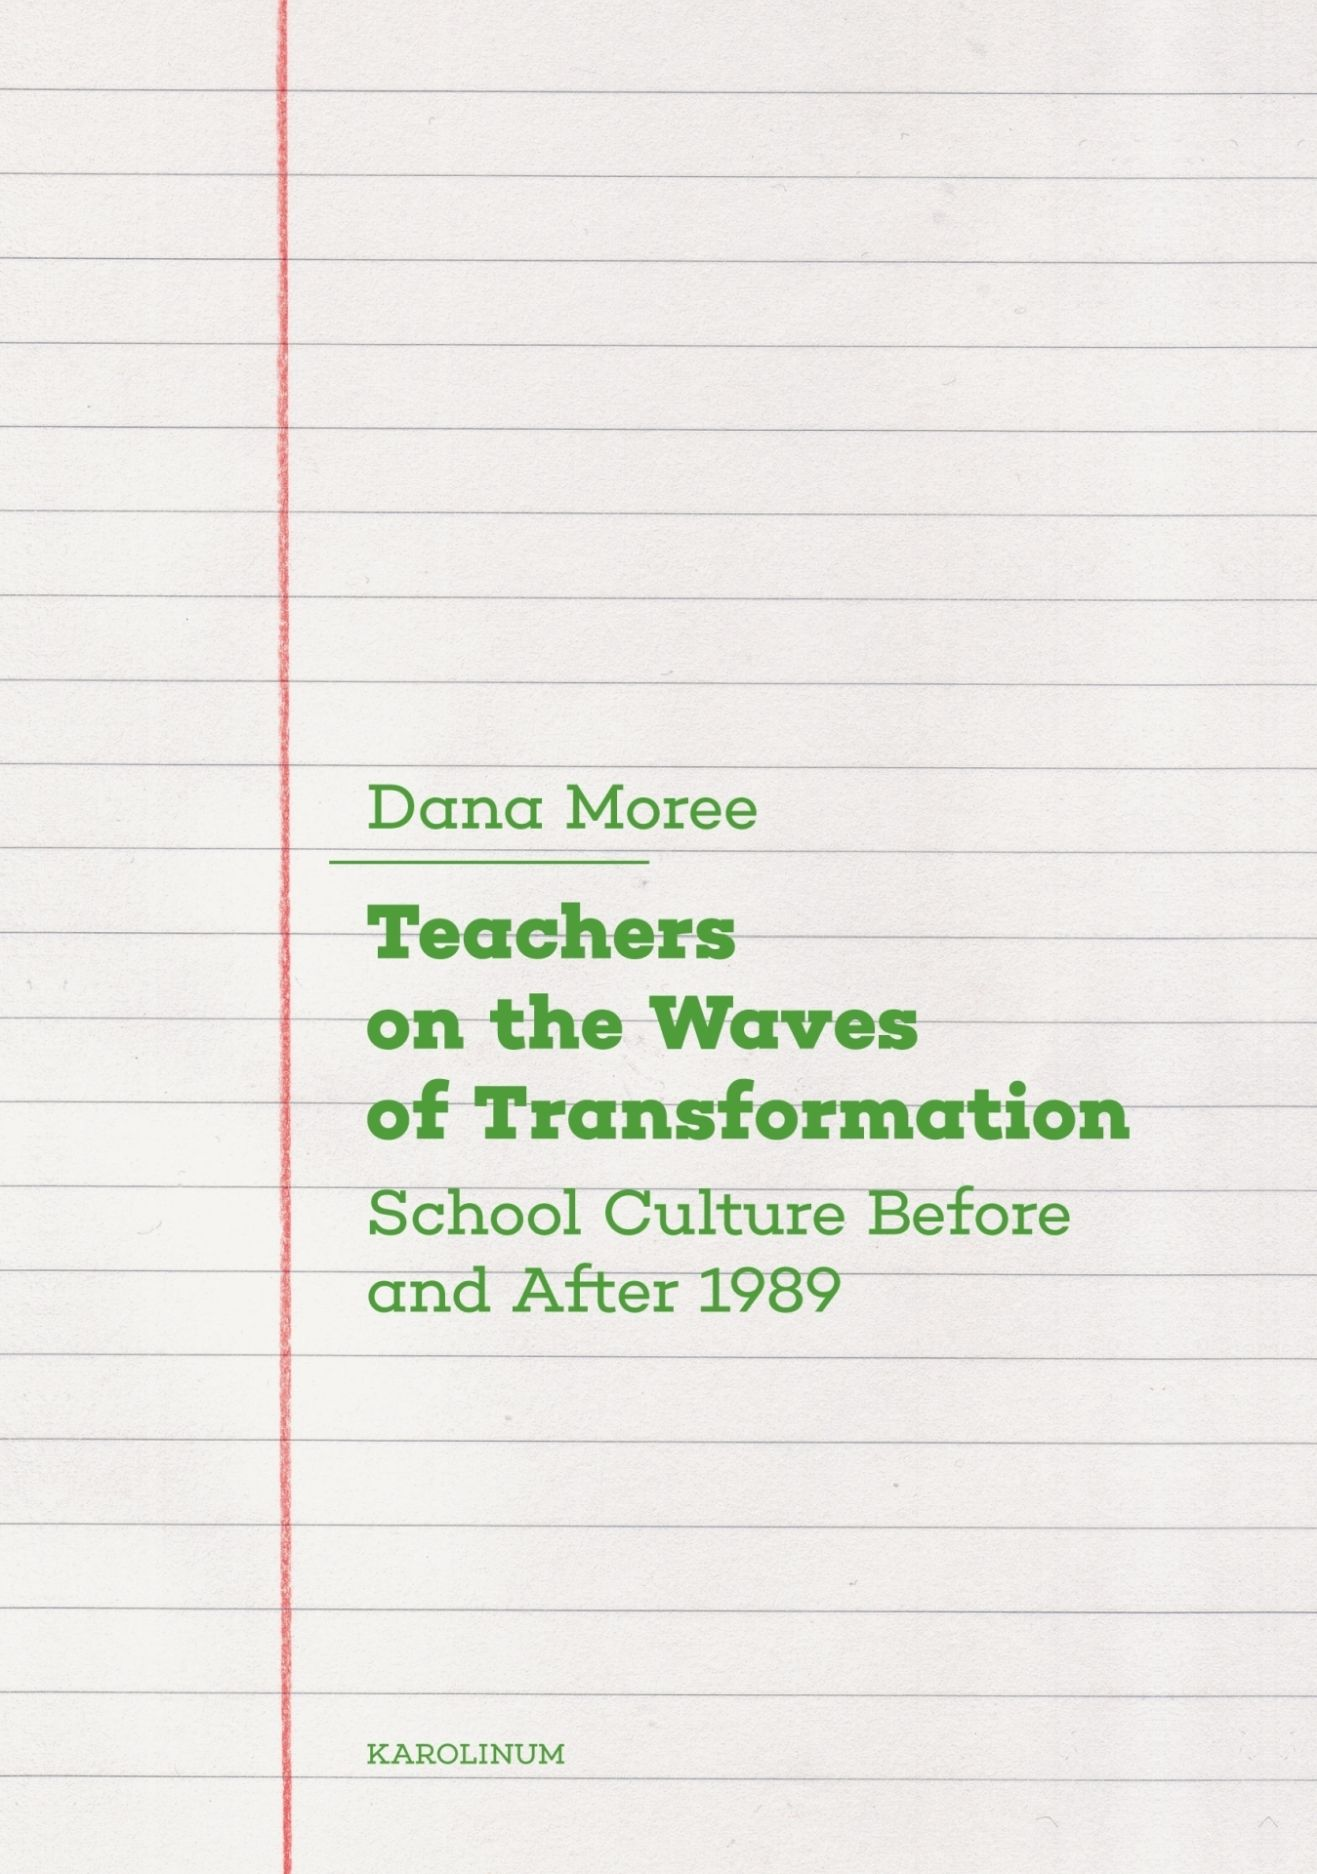 Teachers on the Waves of Transformation: School Culture Before and After 1989